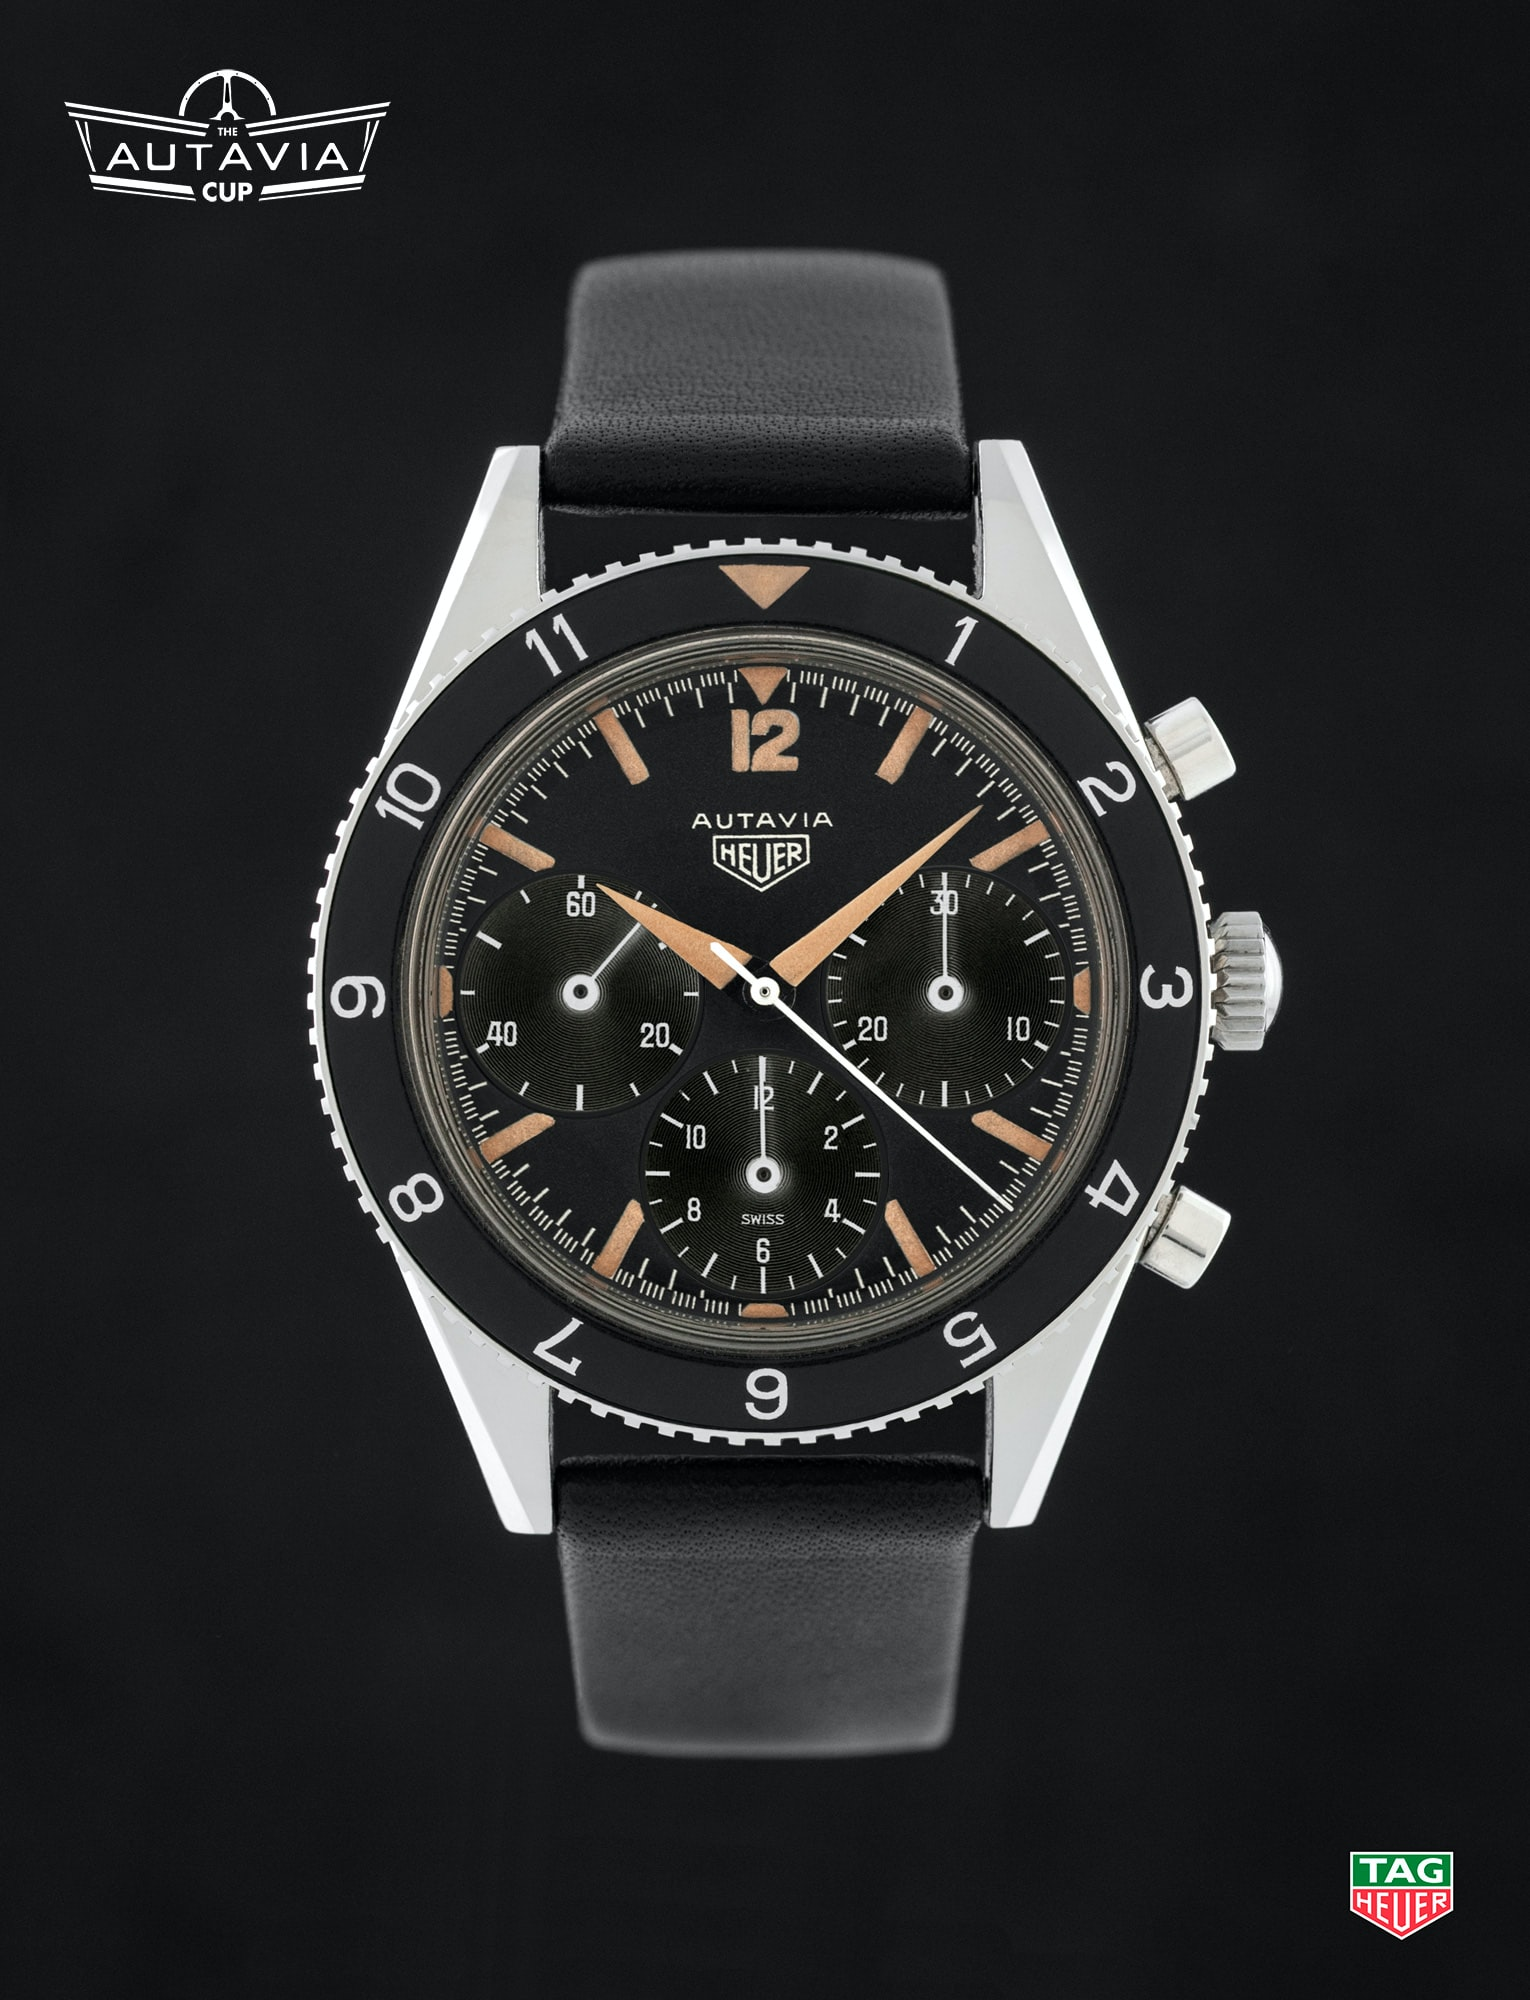 Heuer  TAG Heuer Will Relaunch The Autavia In 2017 – And Fans Get To Choose The Model TAG Heuer Will Relaunch The Autavia In 2017 – And Fans Get To Choose The Model 16 2446 Mk1 N